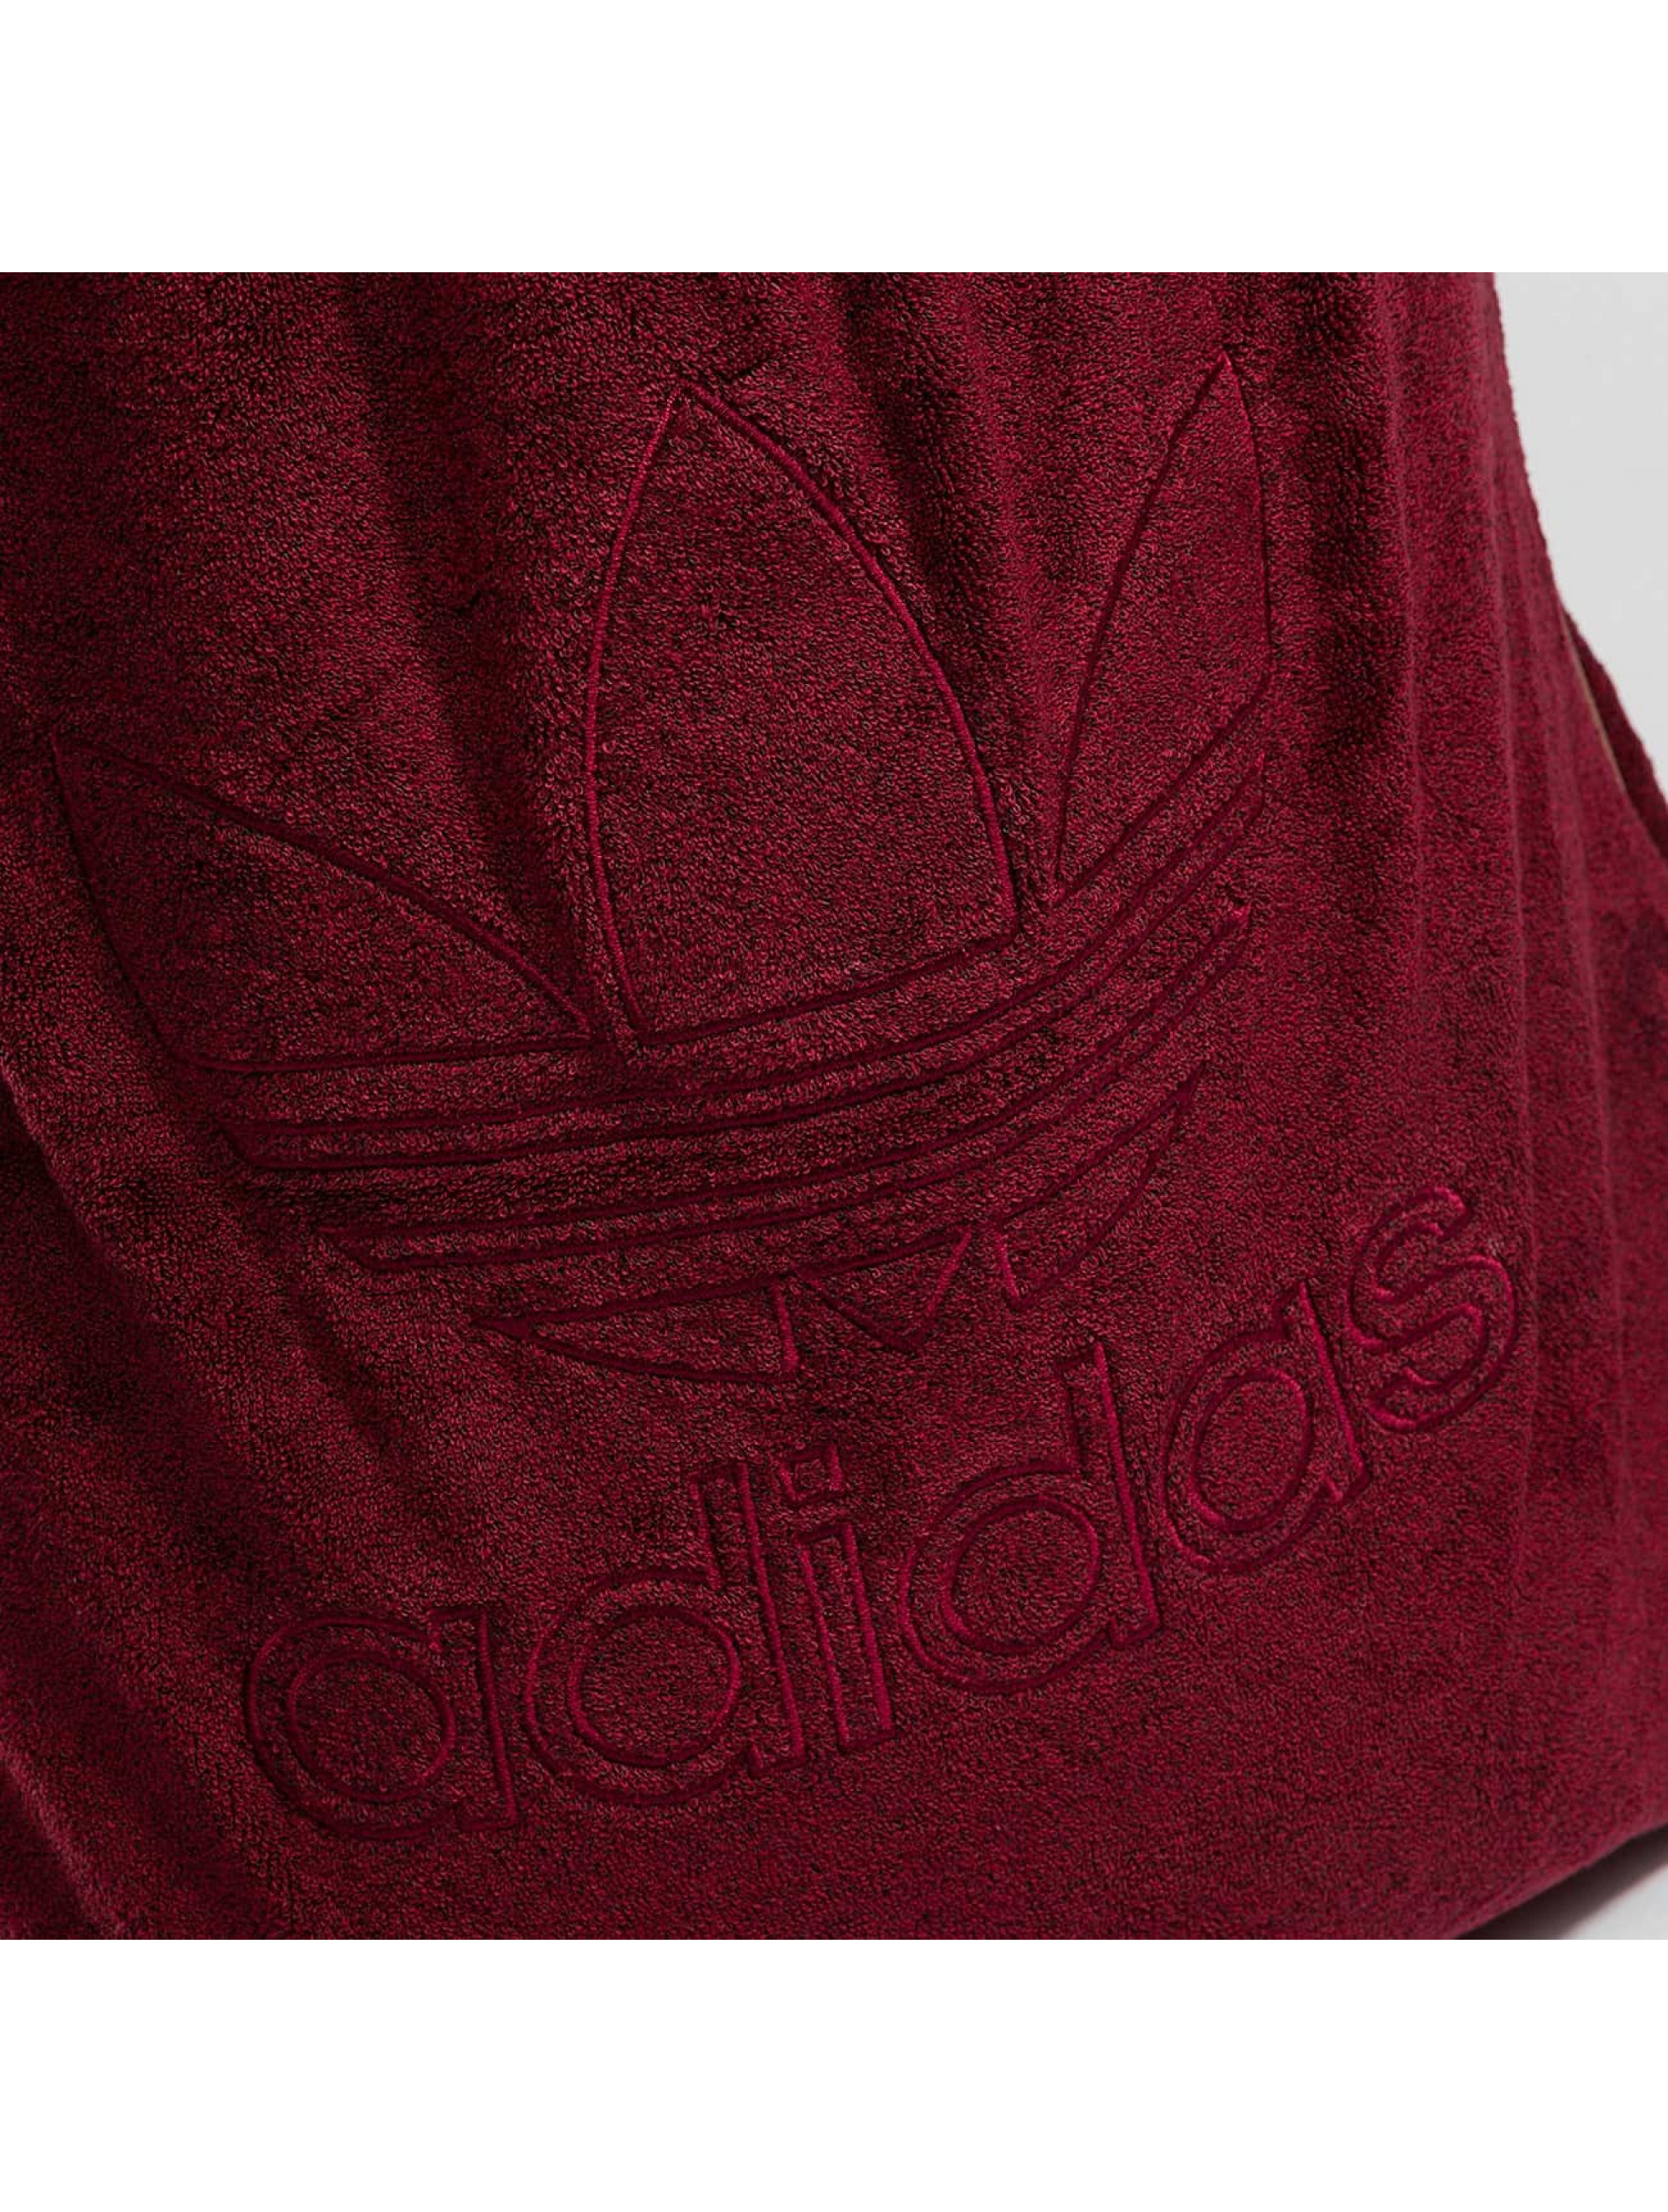 adidas Pouch 3D red